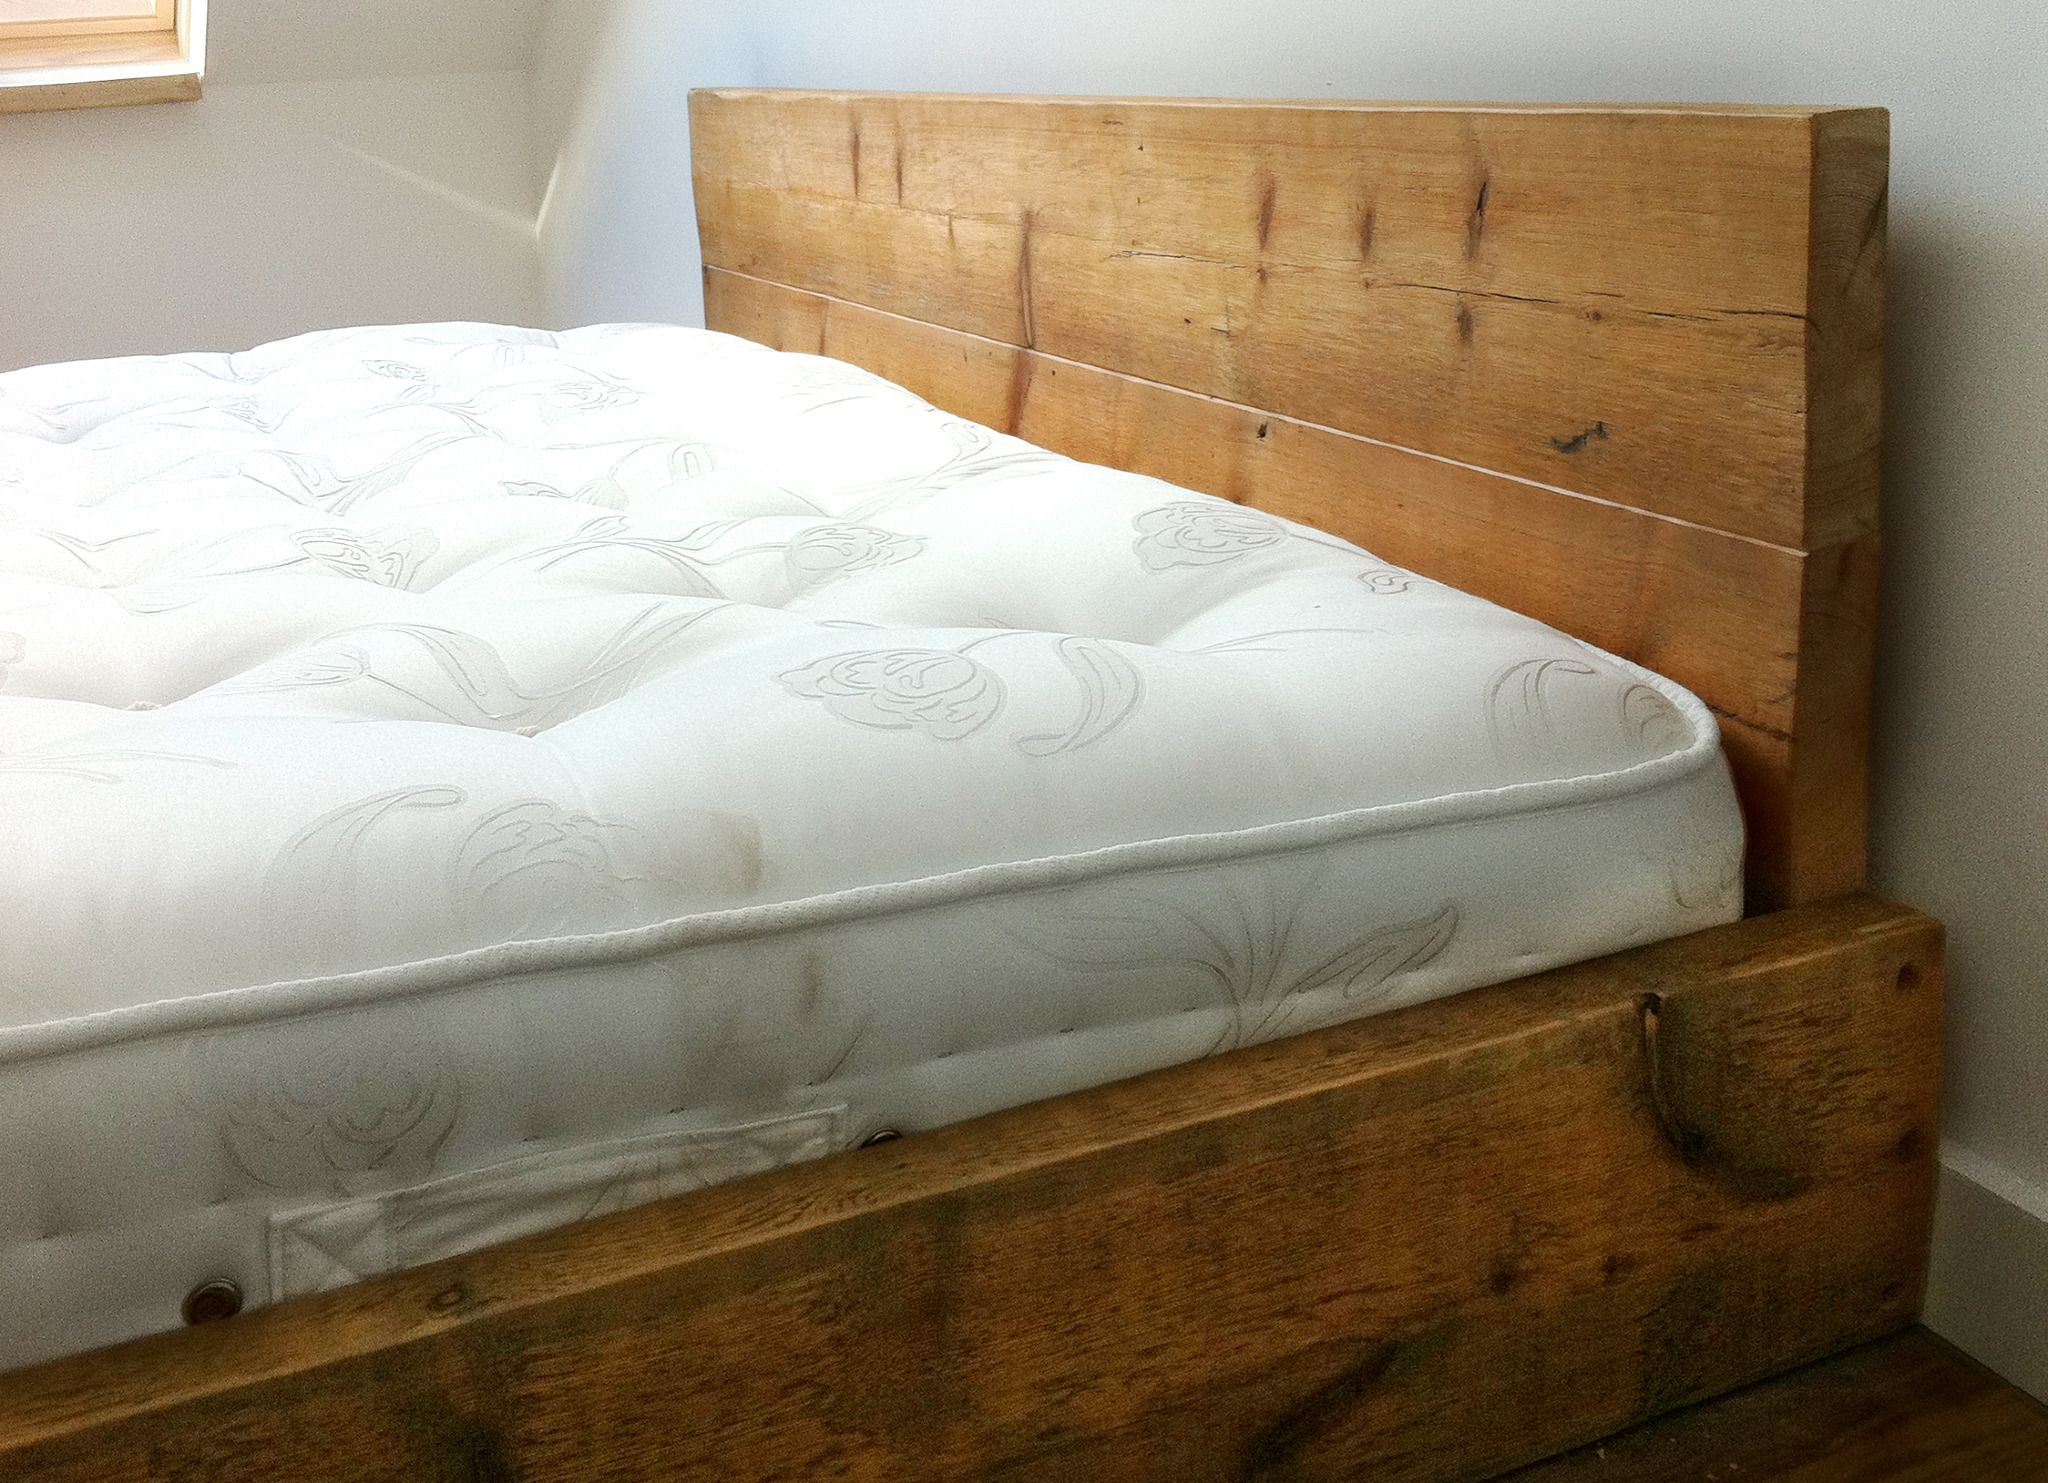 Bespoke Furniture From Reclaimed Material  Google Search - Bedroom